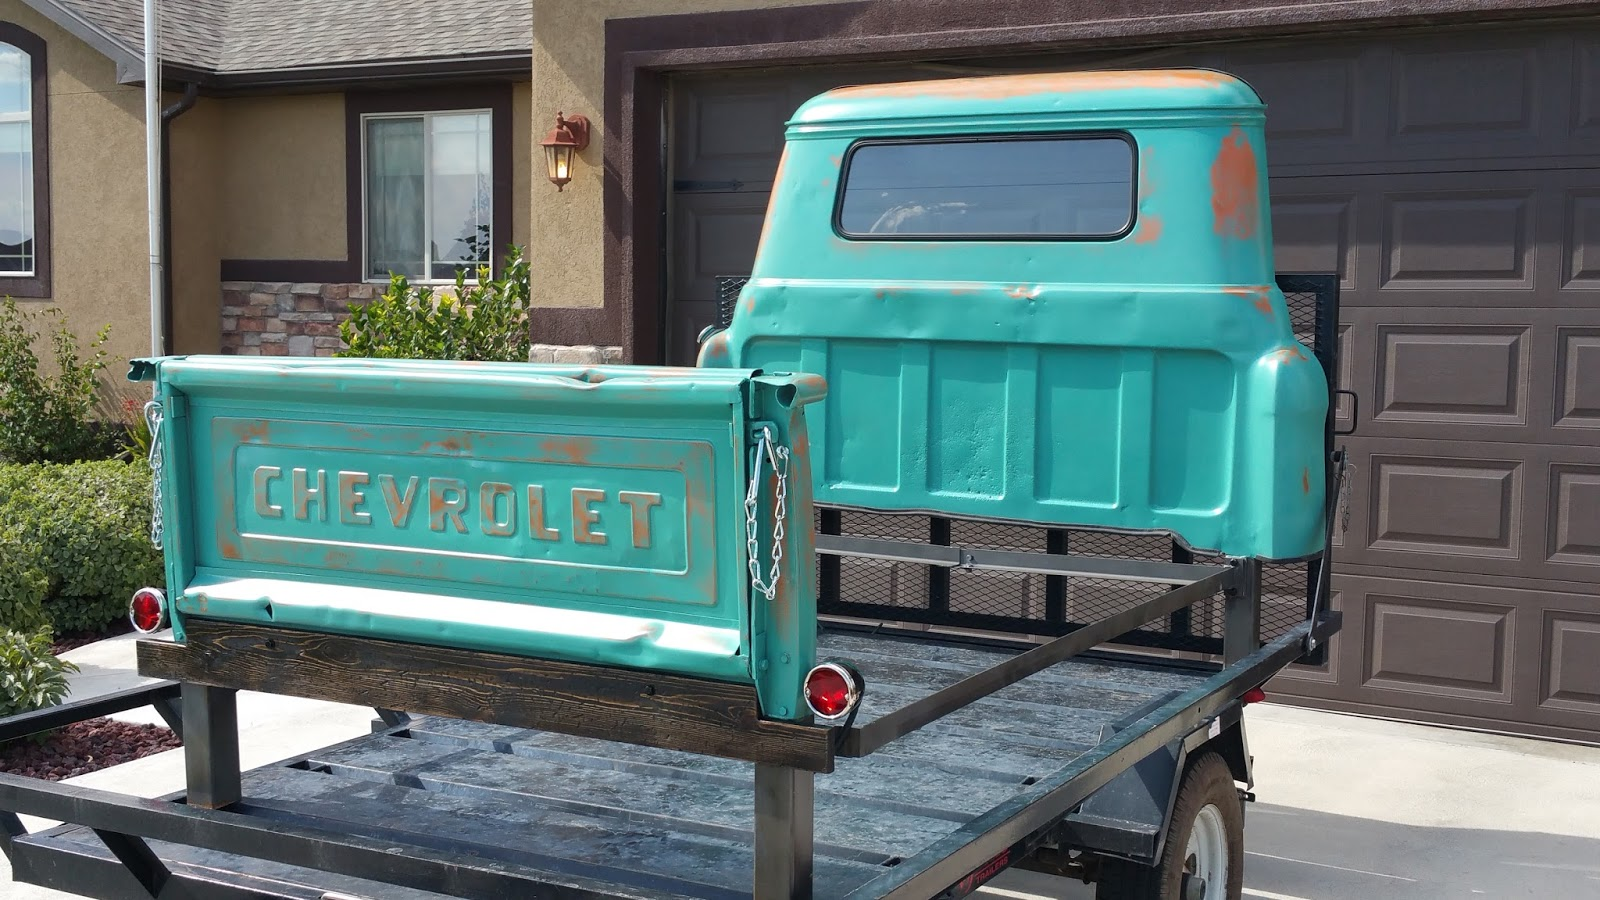 Tailgate customs queen size 1958 chevrolet pickup truck for Classic beds for sale